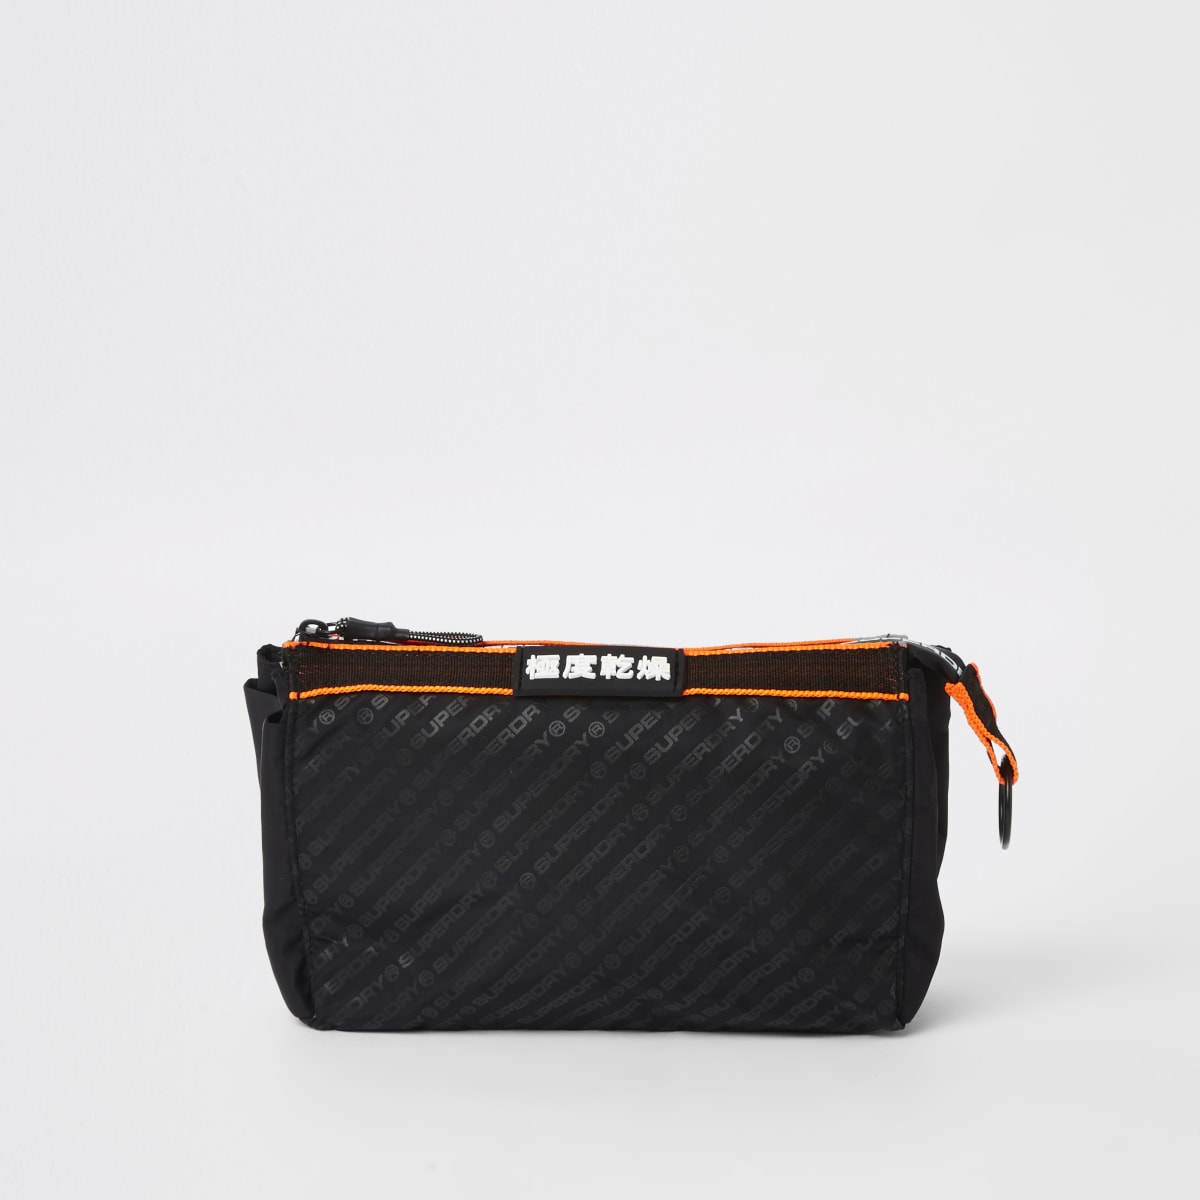 Superdry black washbag